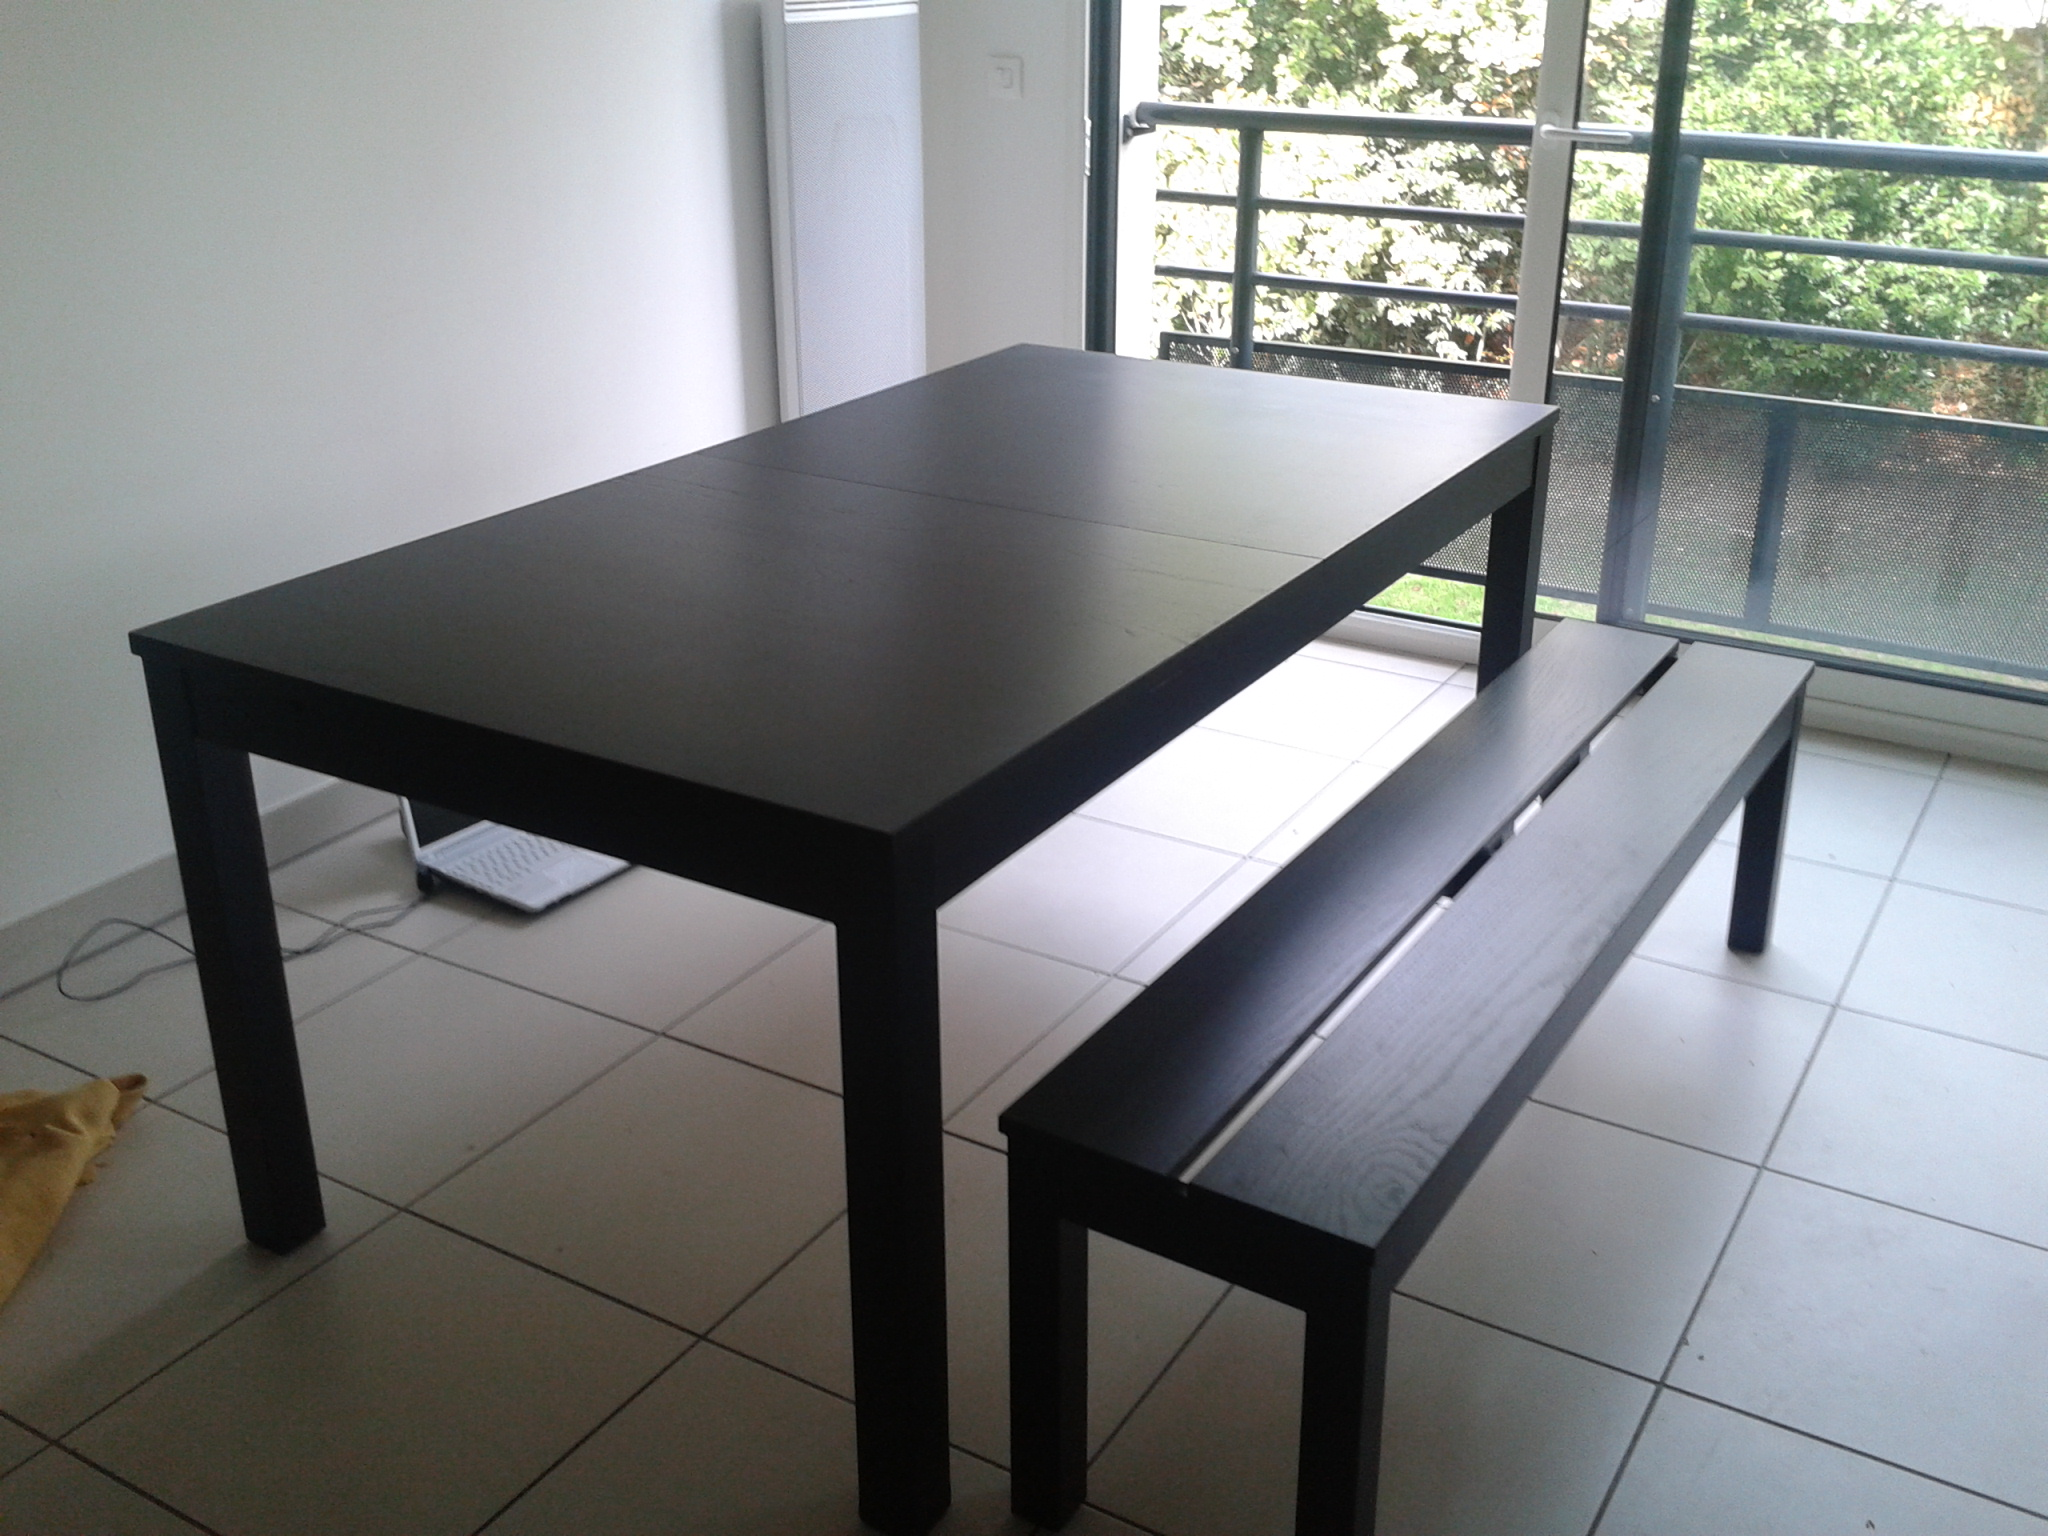 banc avec dossier pour salle a manger awesome table yps banc et chaises aye with banc avec. Black Bedroom Furniture Sets. Home Design Ideas